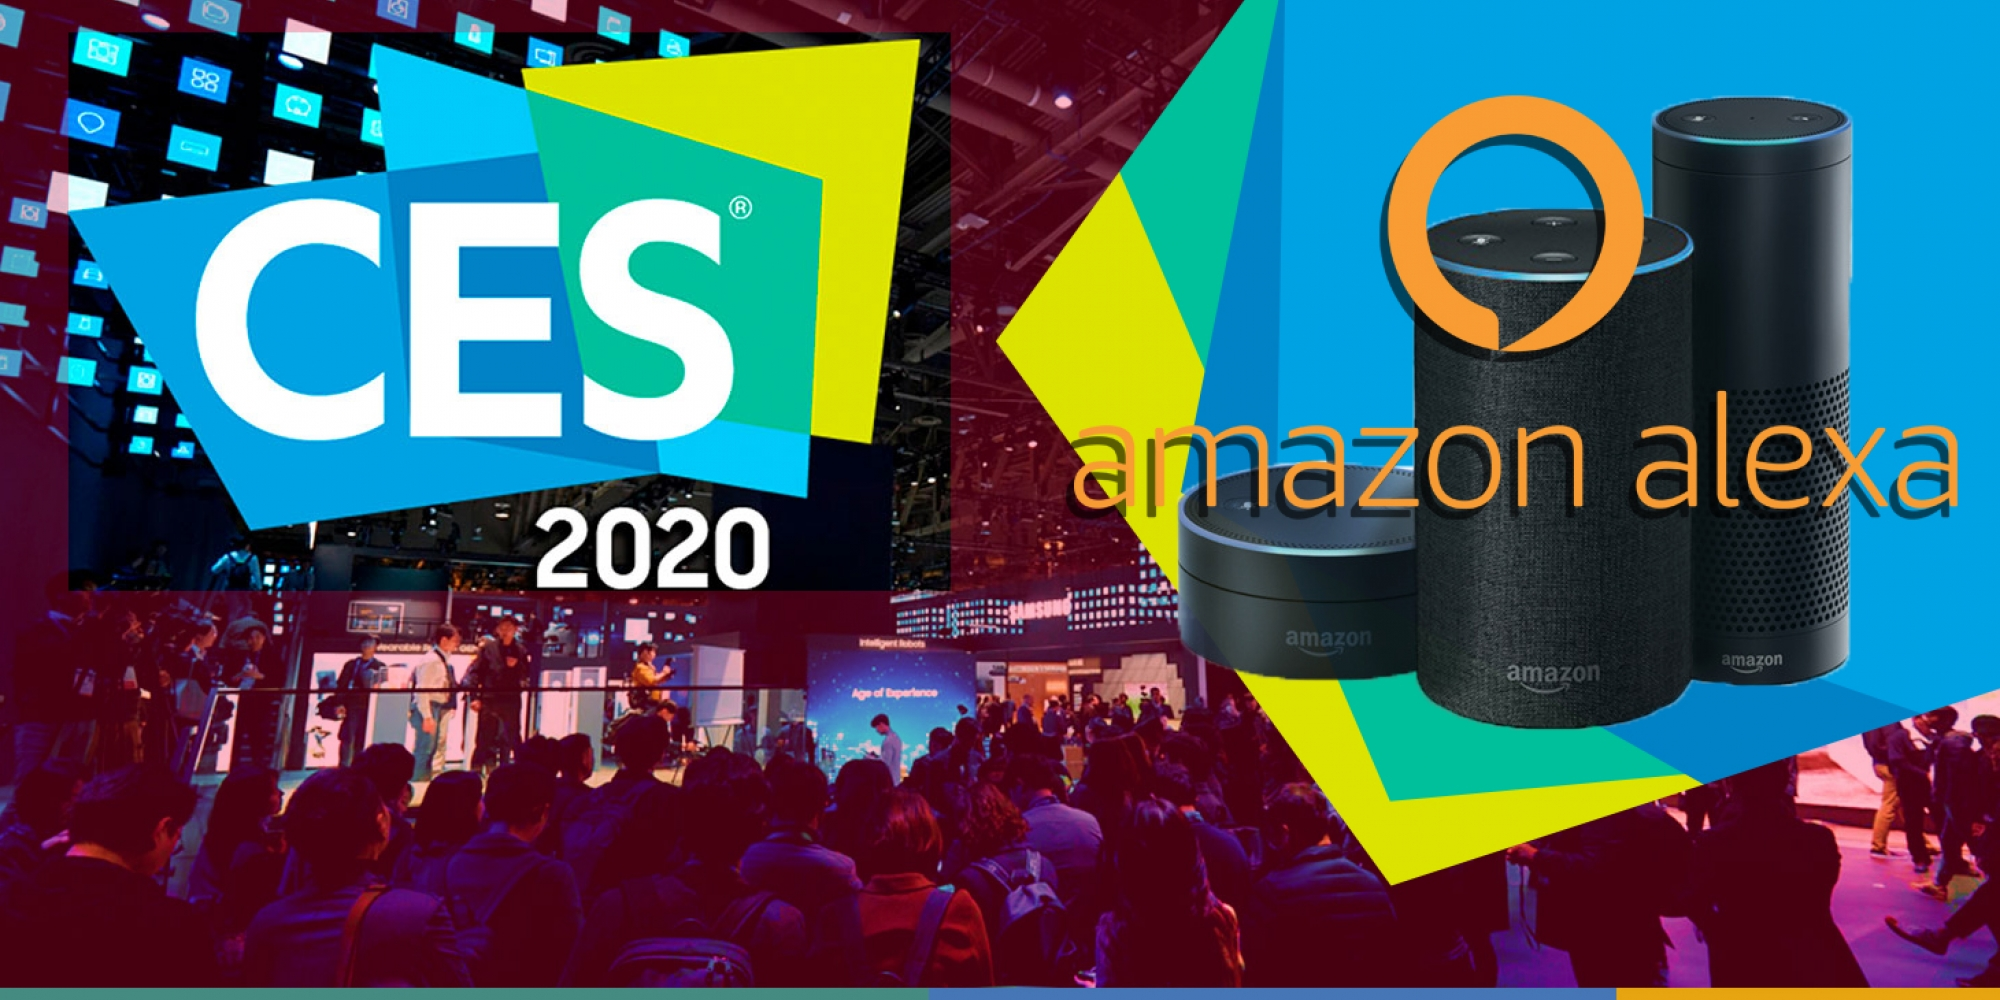 Amazon was the company with the largest presence at CES 2020 with Alexa